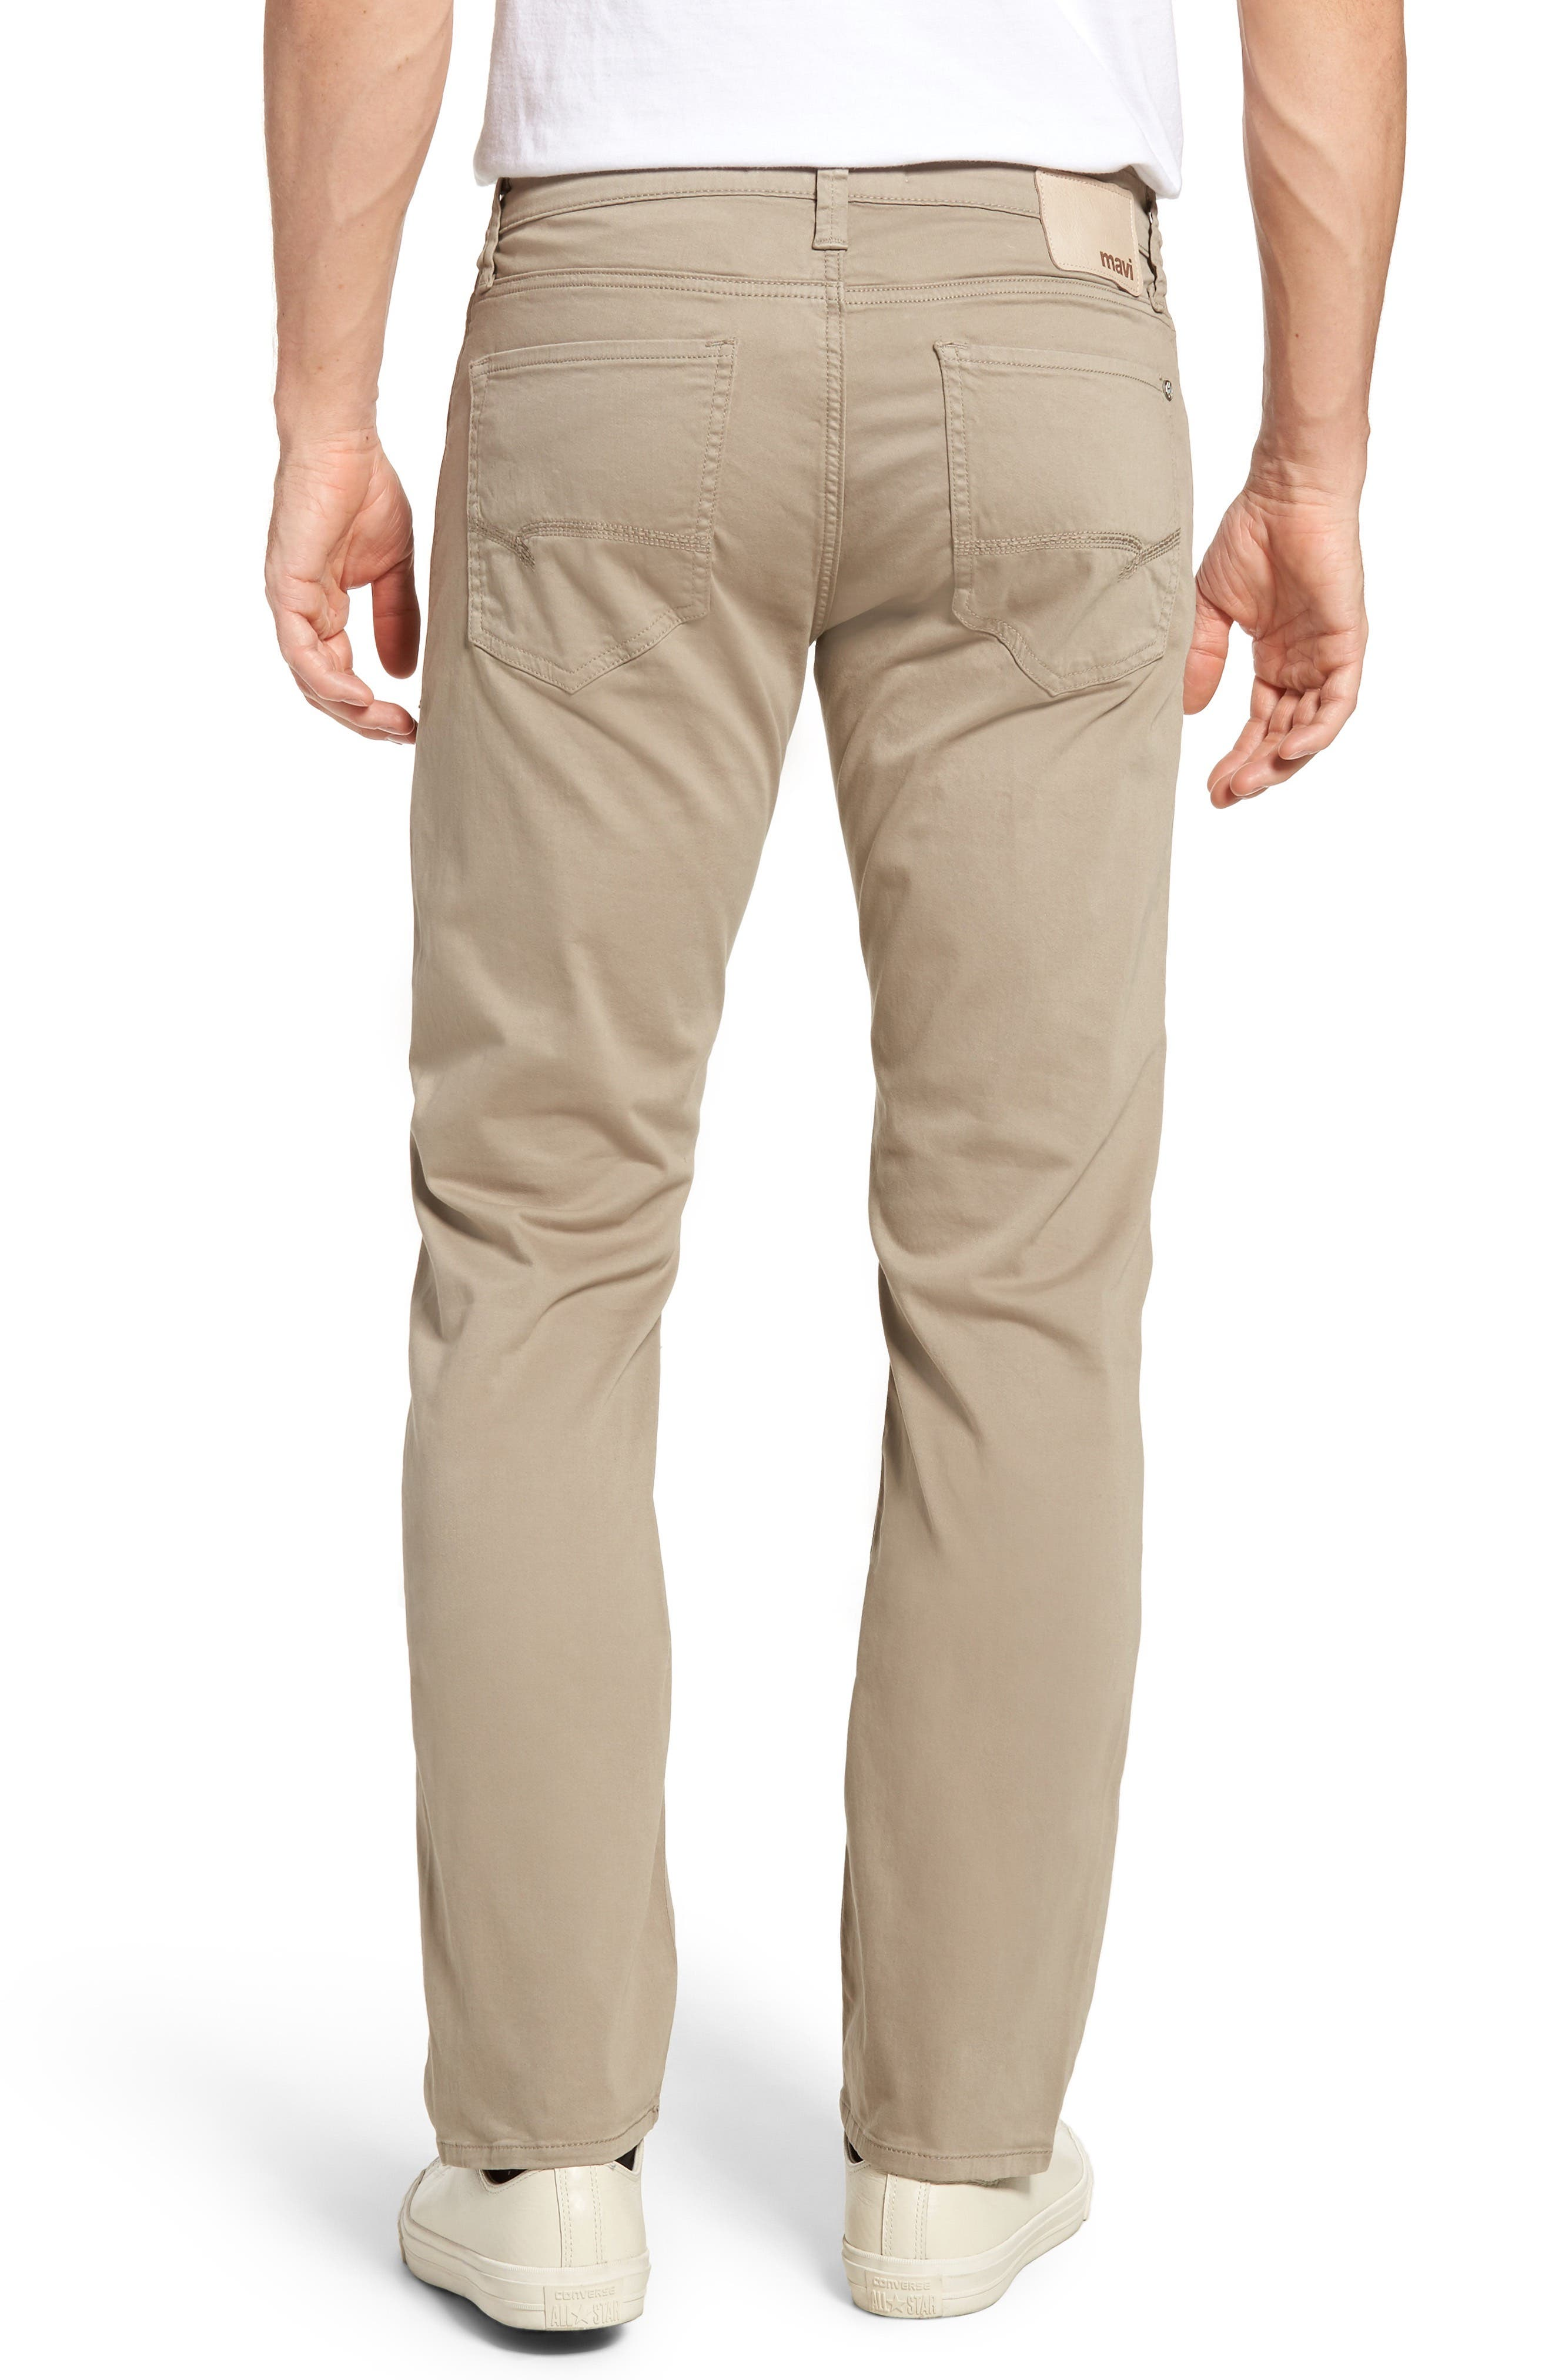 Zach Straight Leg Twill Pants,                             Alternate thumbnail 2, color,                             BEIGE TWILL